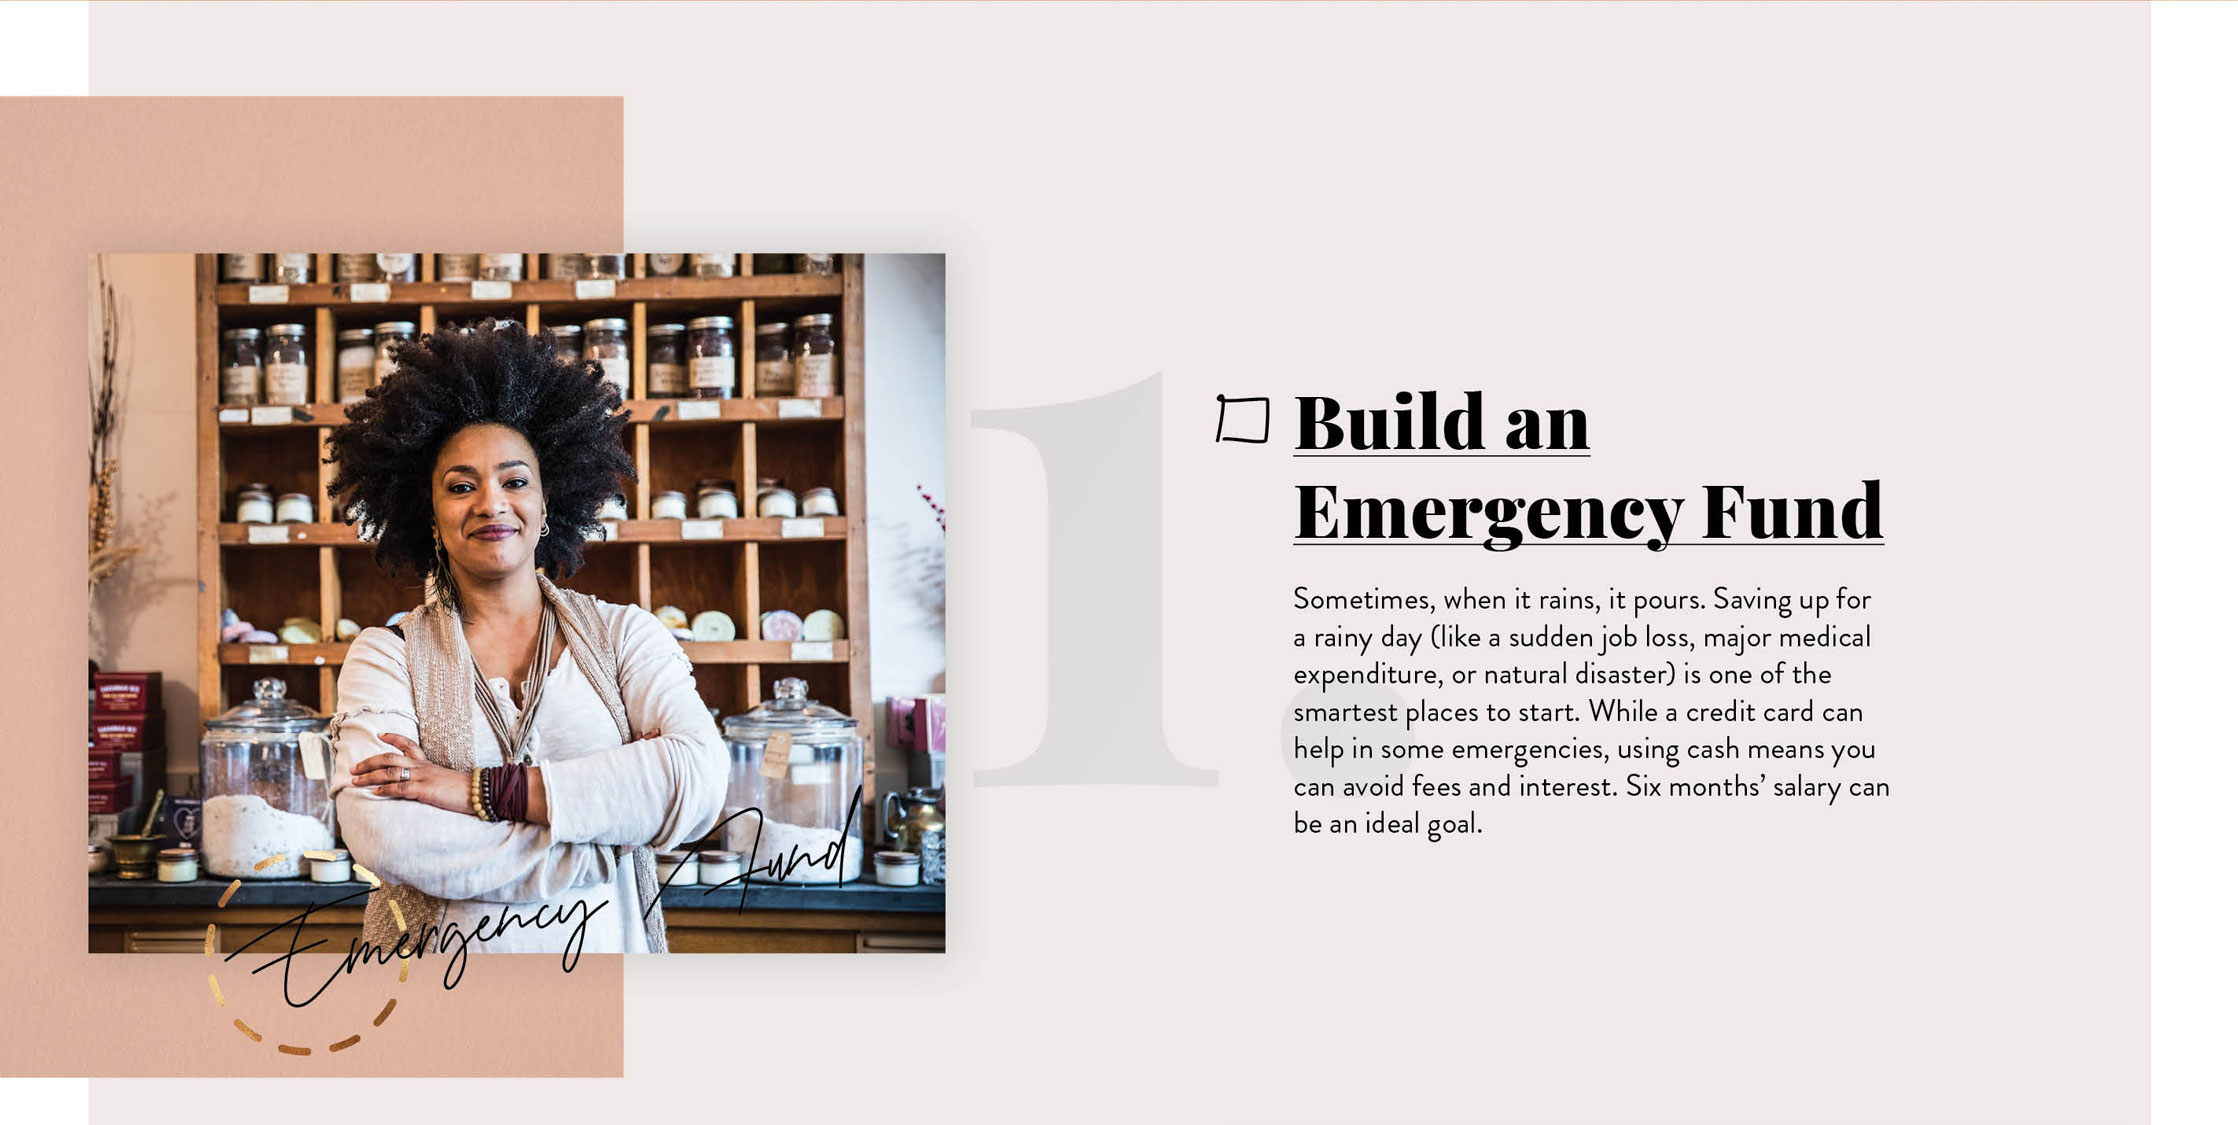 Build an Emergency Fund. Sometimes, when it rains, it pours. Saving up for a rainy day (like a sudden job loss, major medical expenditure, or natural disaster) is one of the smartest places to start. While a credit card can help in some emergencies, using cash means you can avoid fees and interest. Six months' salary can be an ideal goal.